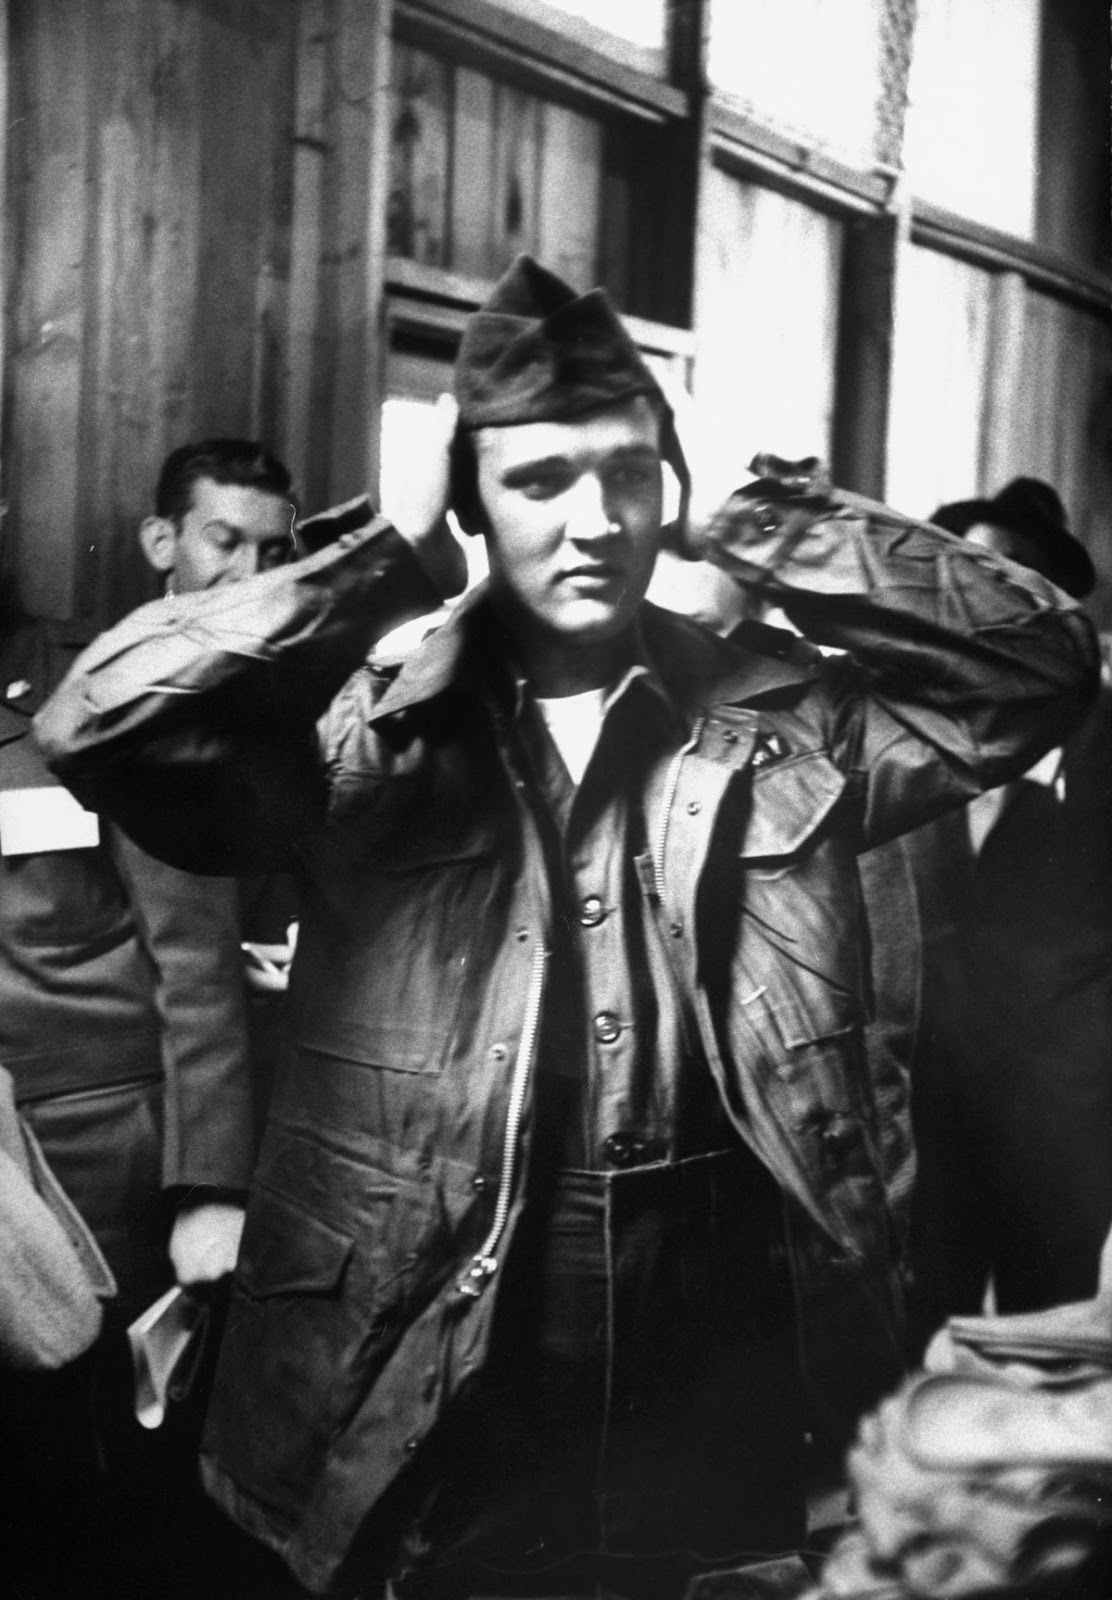 On March 24, 1958, Elvis Presley was inducted into the